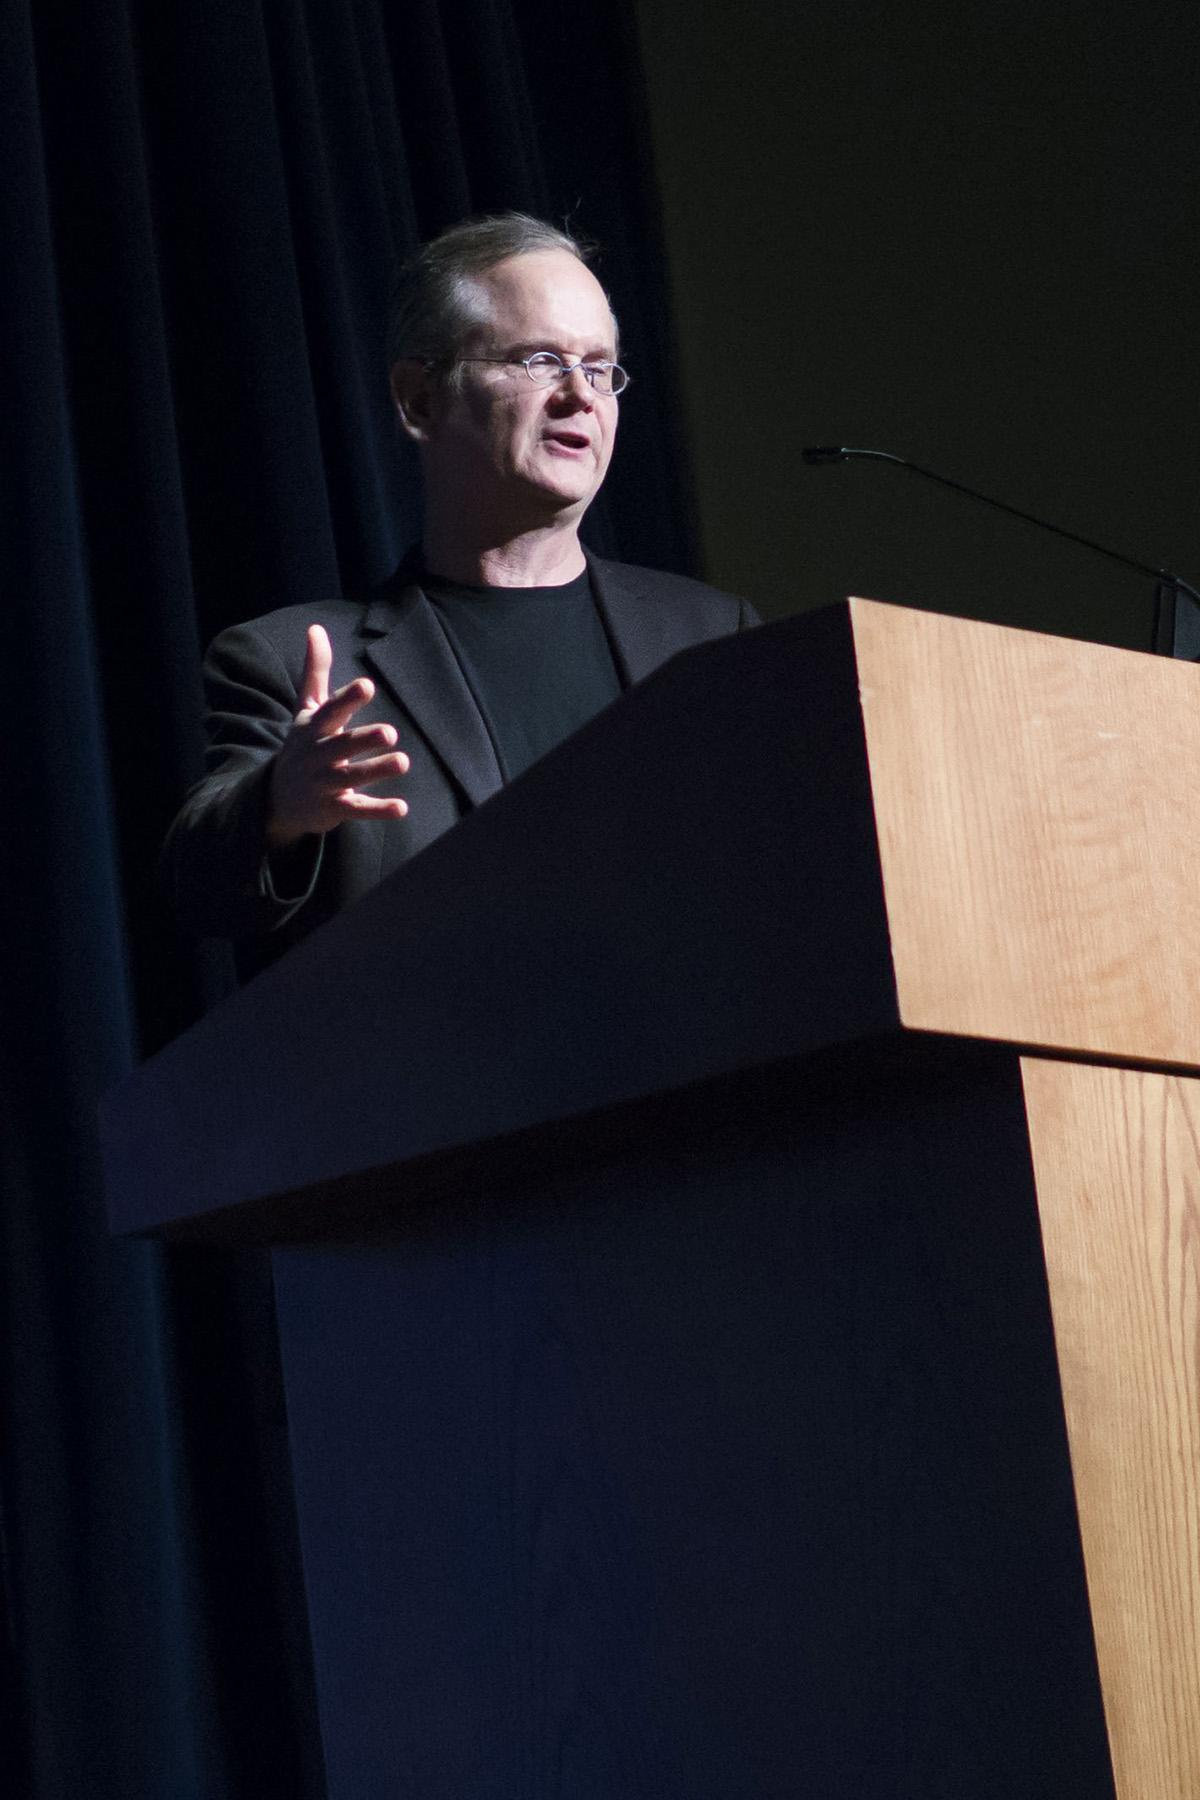 Harvard law professor Lawrence Lessig spoke about the faults of in the U.S. government on Wednesday in Schofield Auditorium.